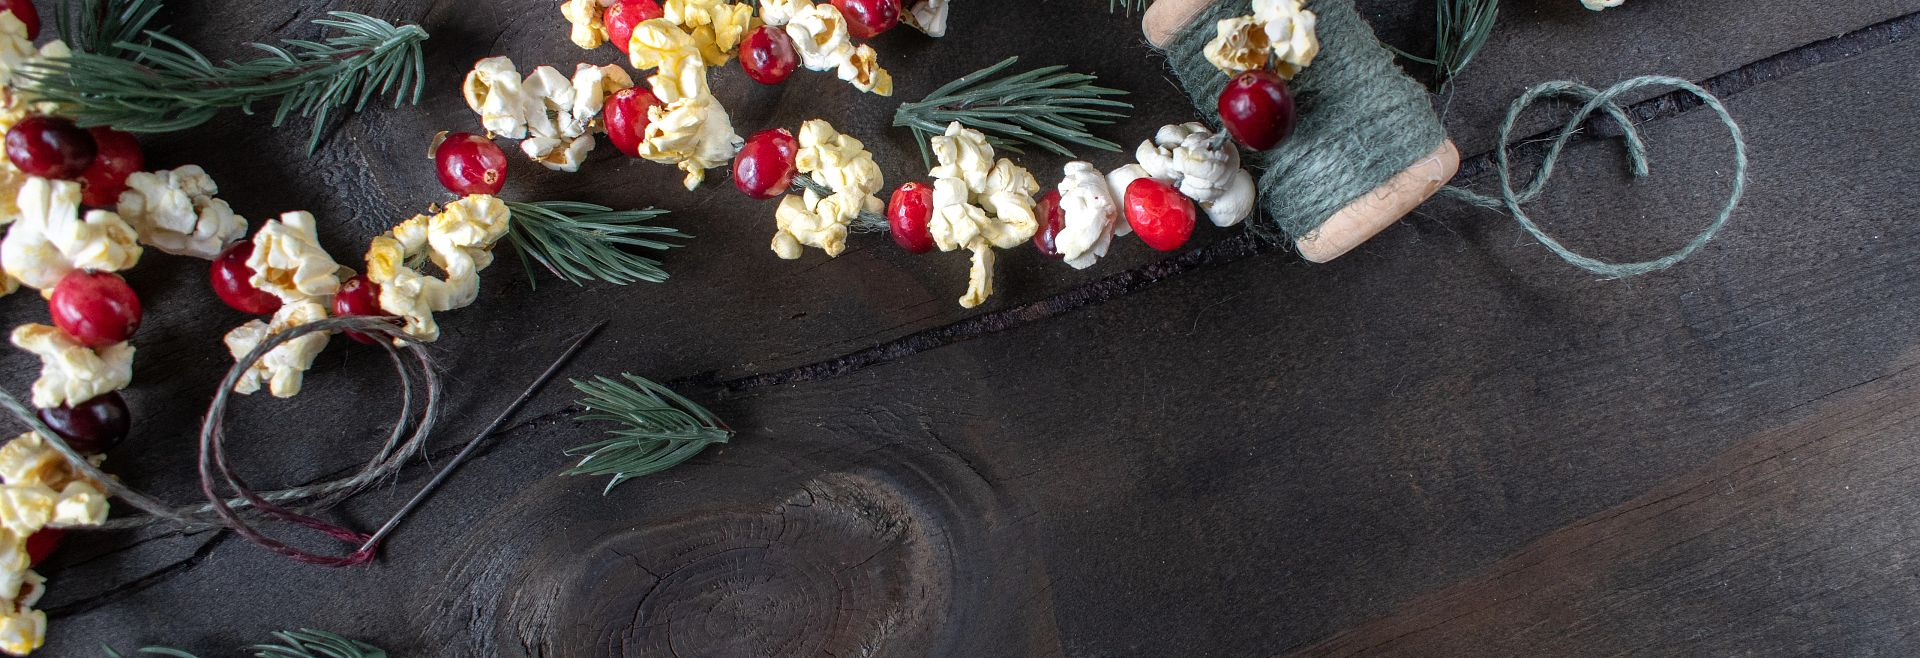 Cranberry and Popcorn Garland Getty Images